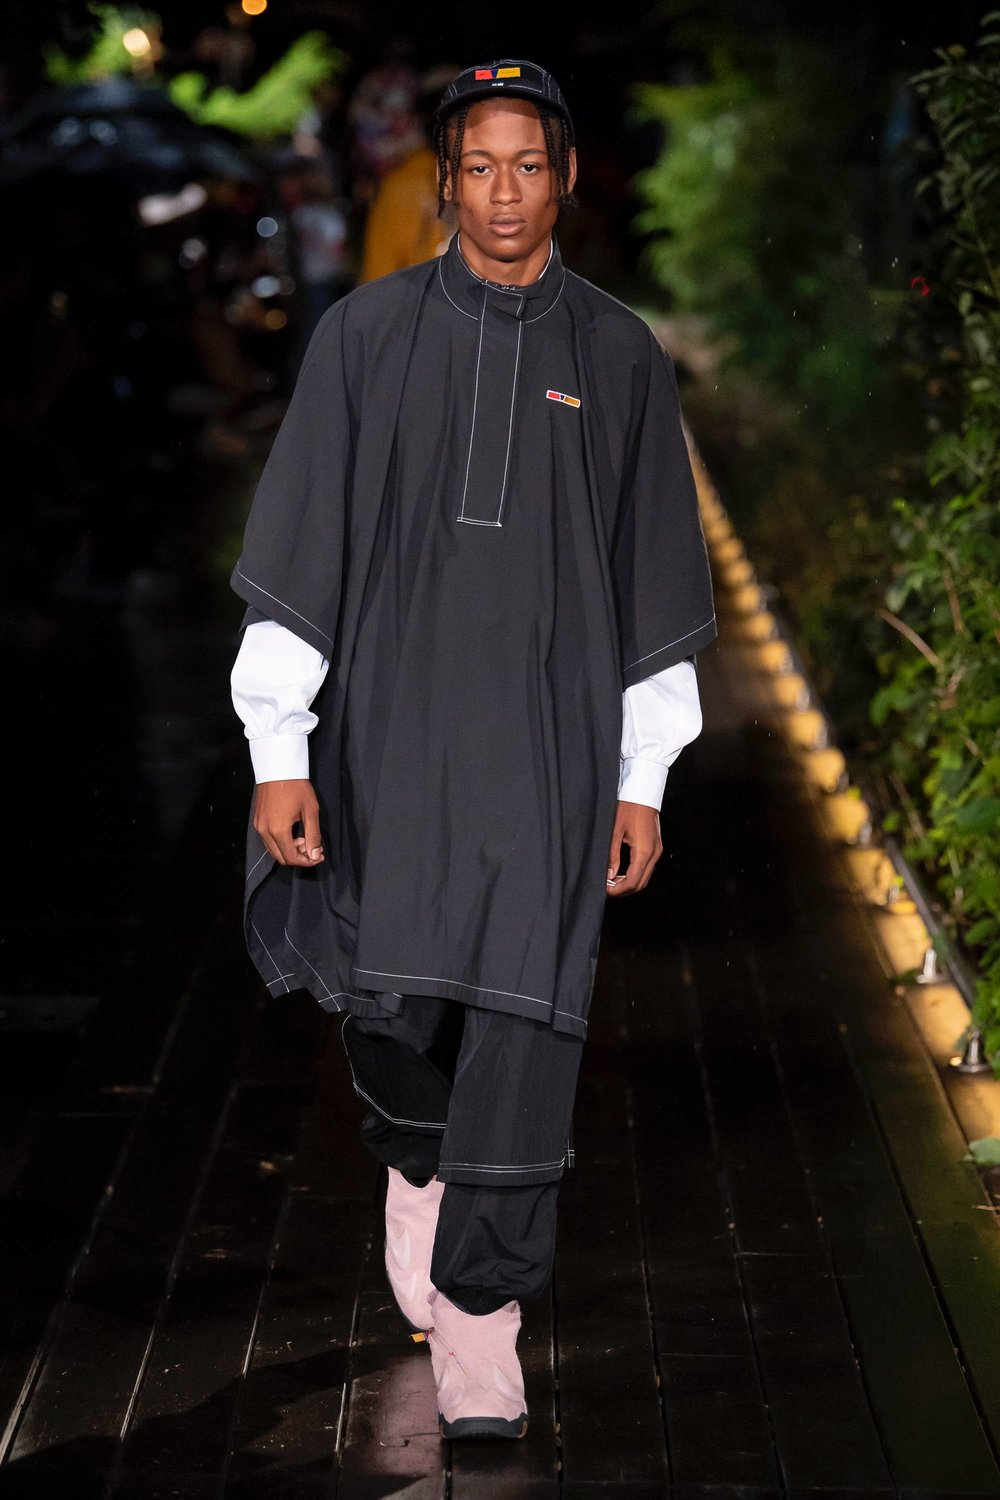 Cozy walking in Pyer Moss' Spring/Summer 2019 show, at the Weeksville Heritage Center. - Photo: Vogue.com